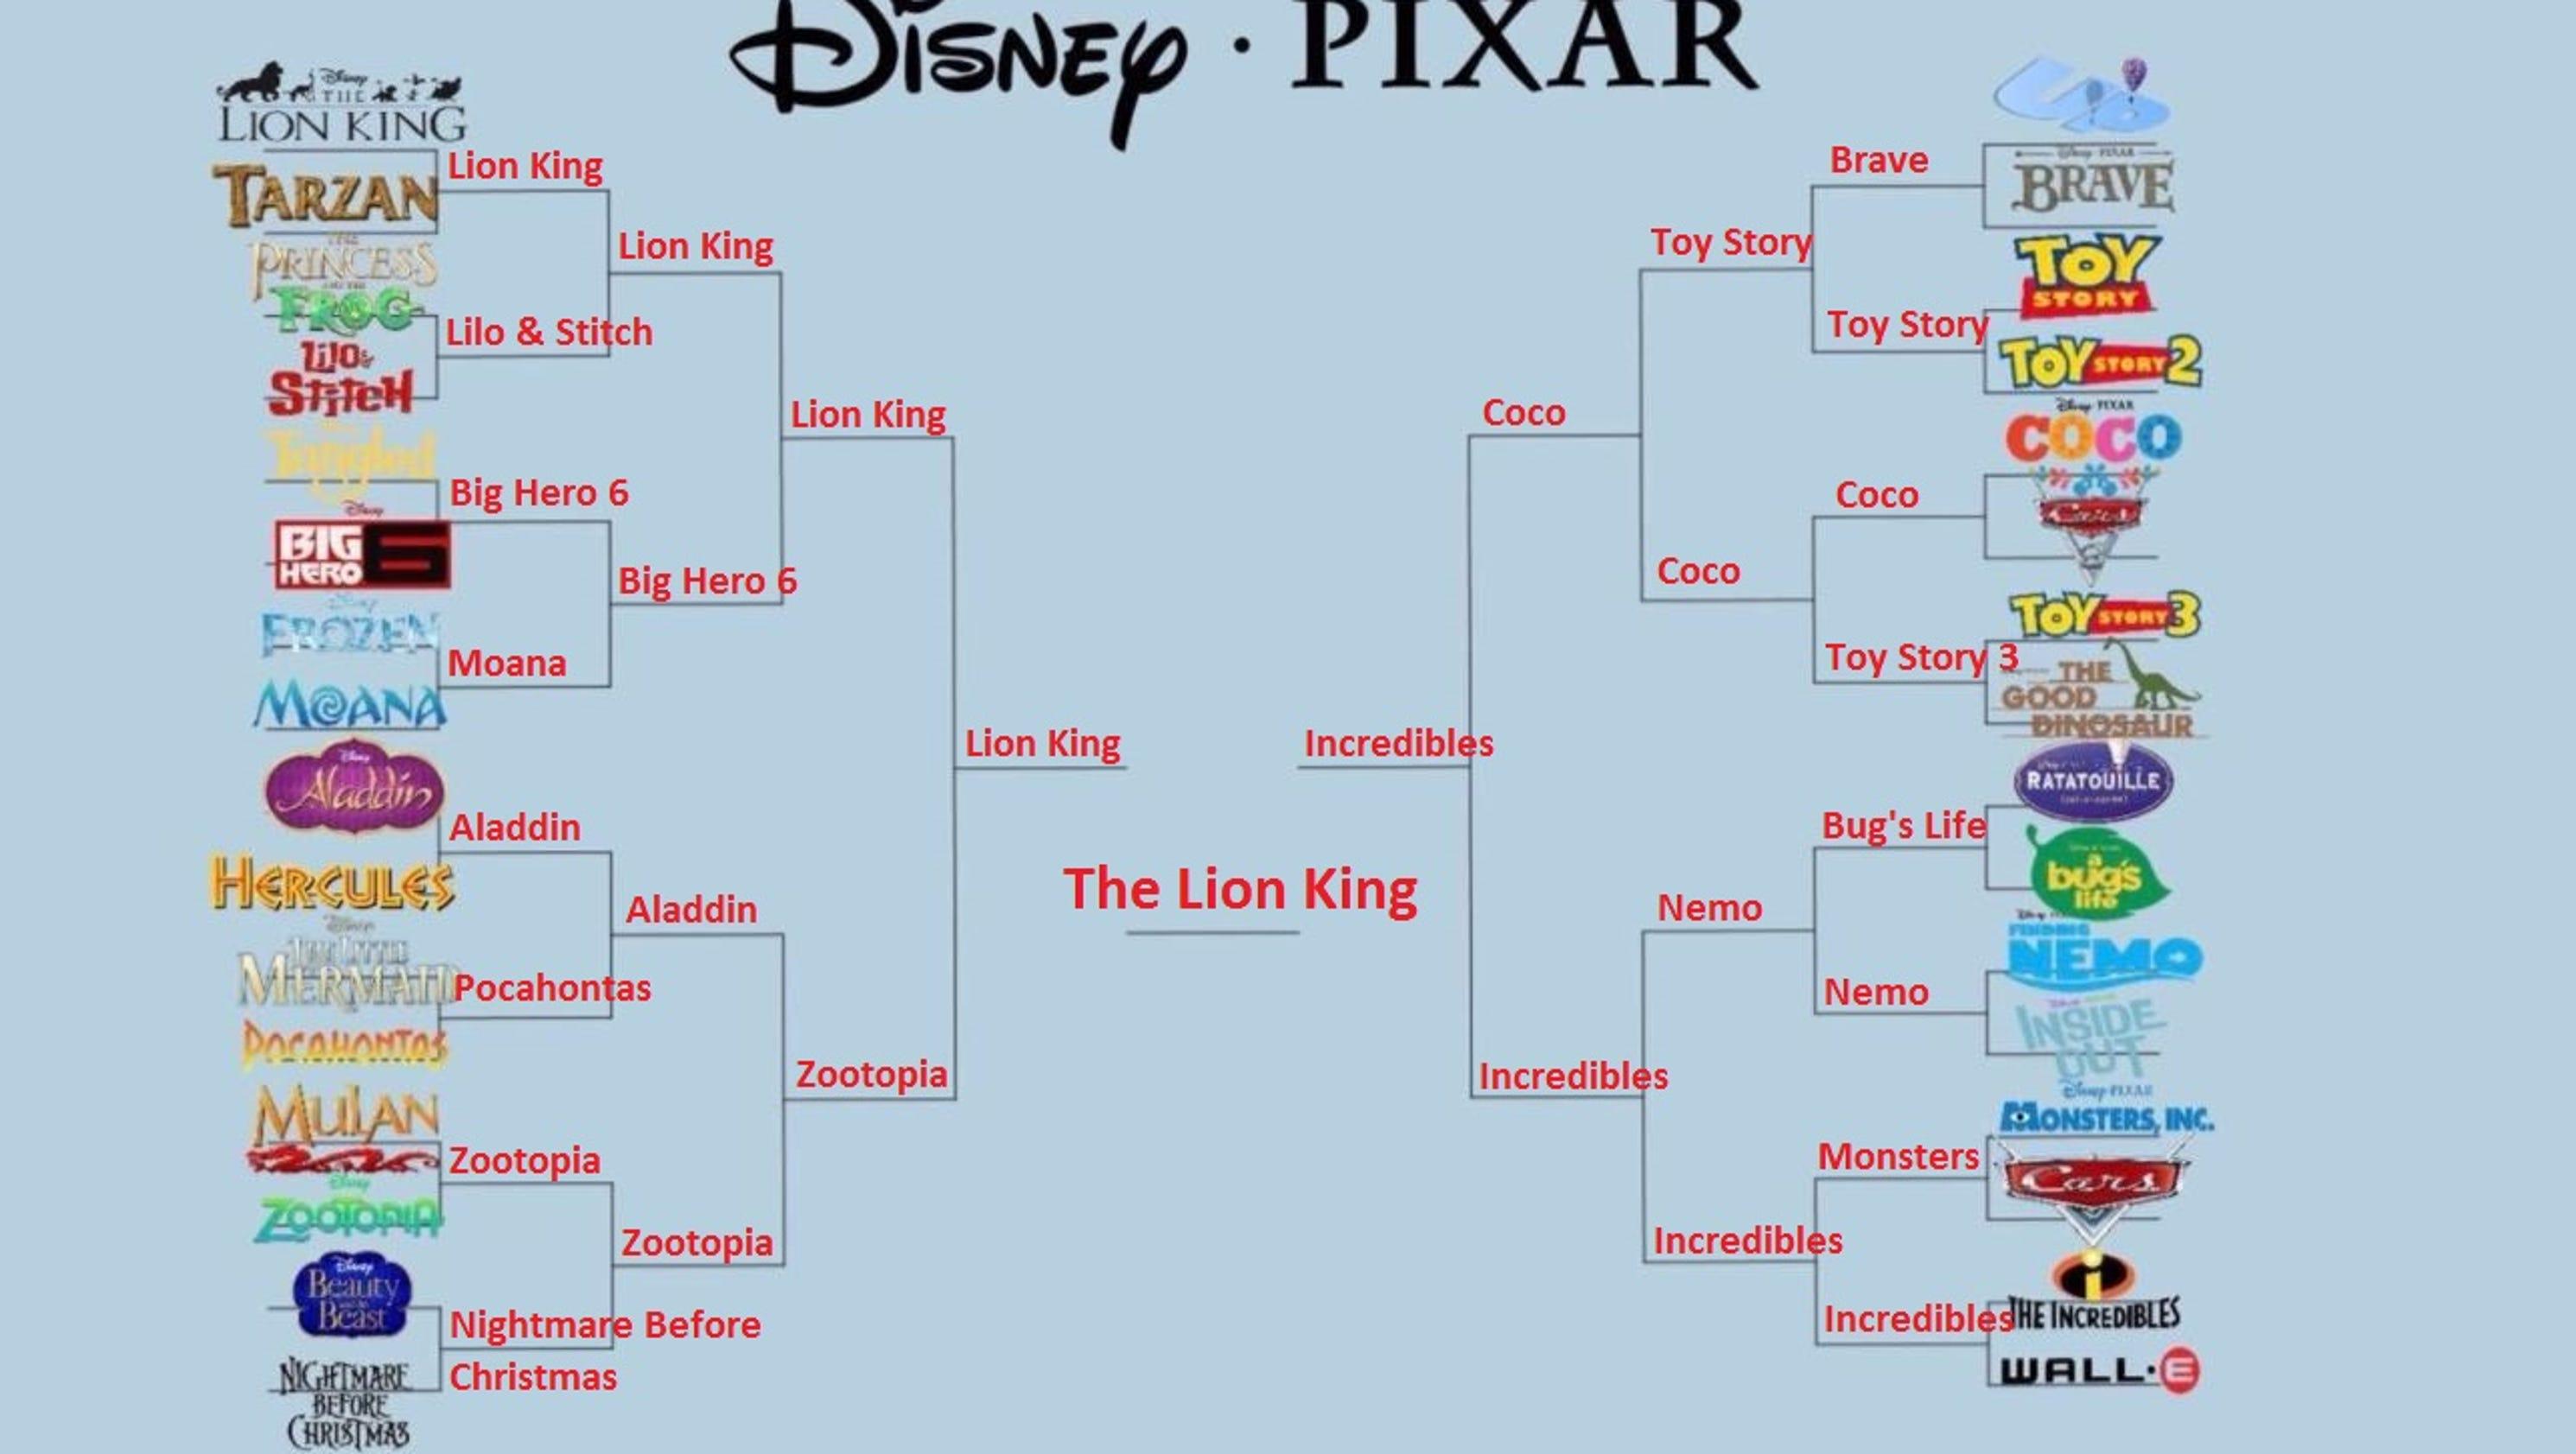 Disney Pixar tournament bracket brings the March Madness